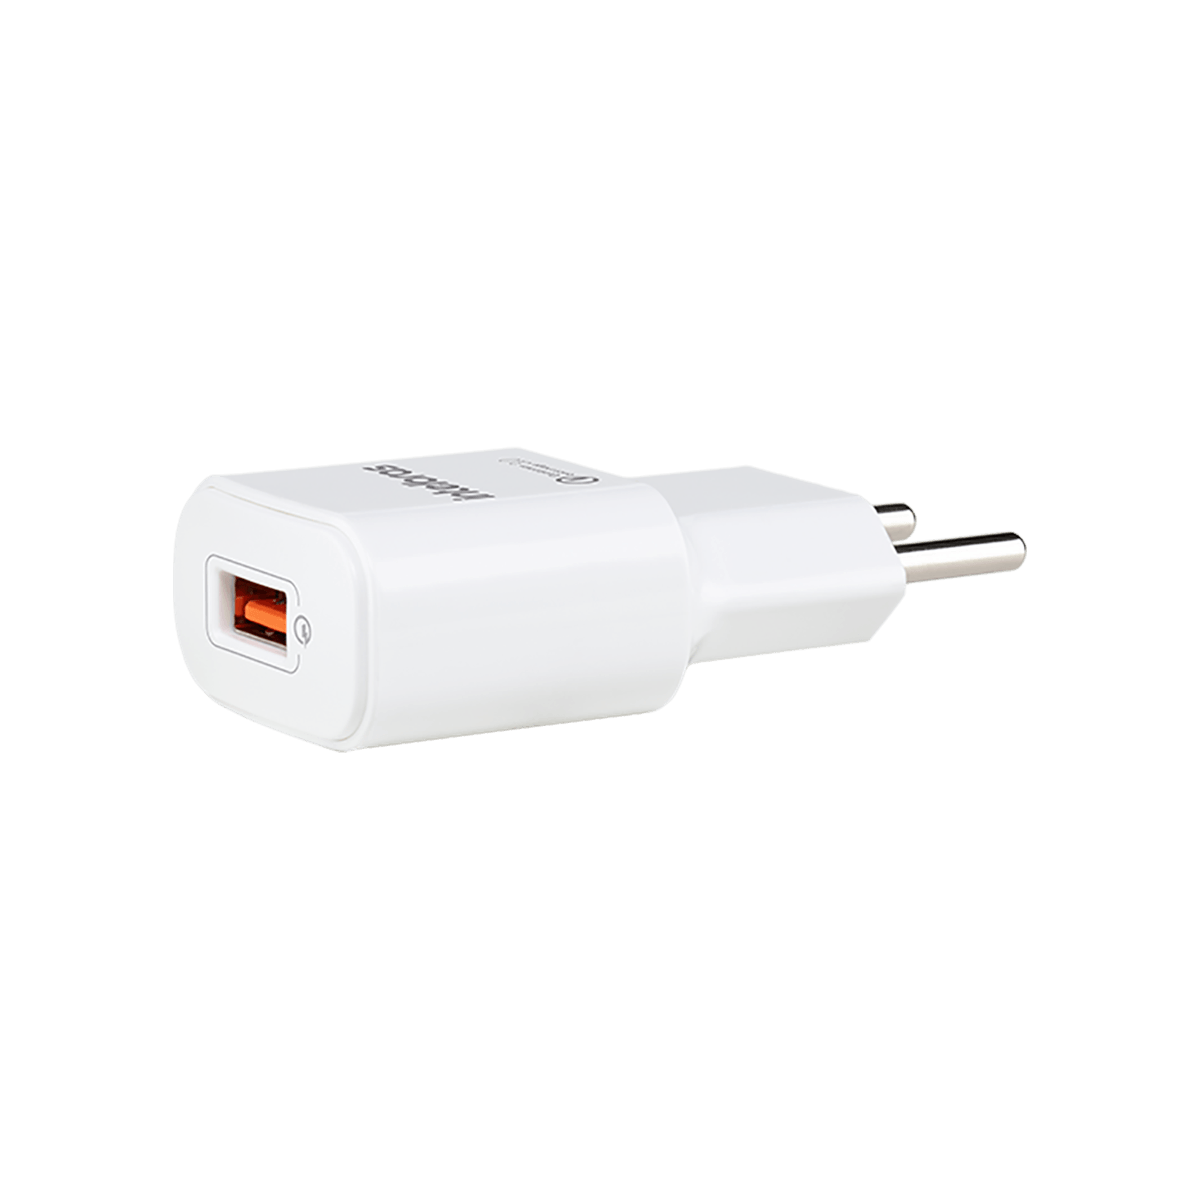 Carregador USB Intelbras EC1  Quick Branca